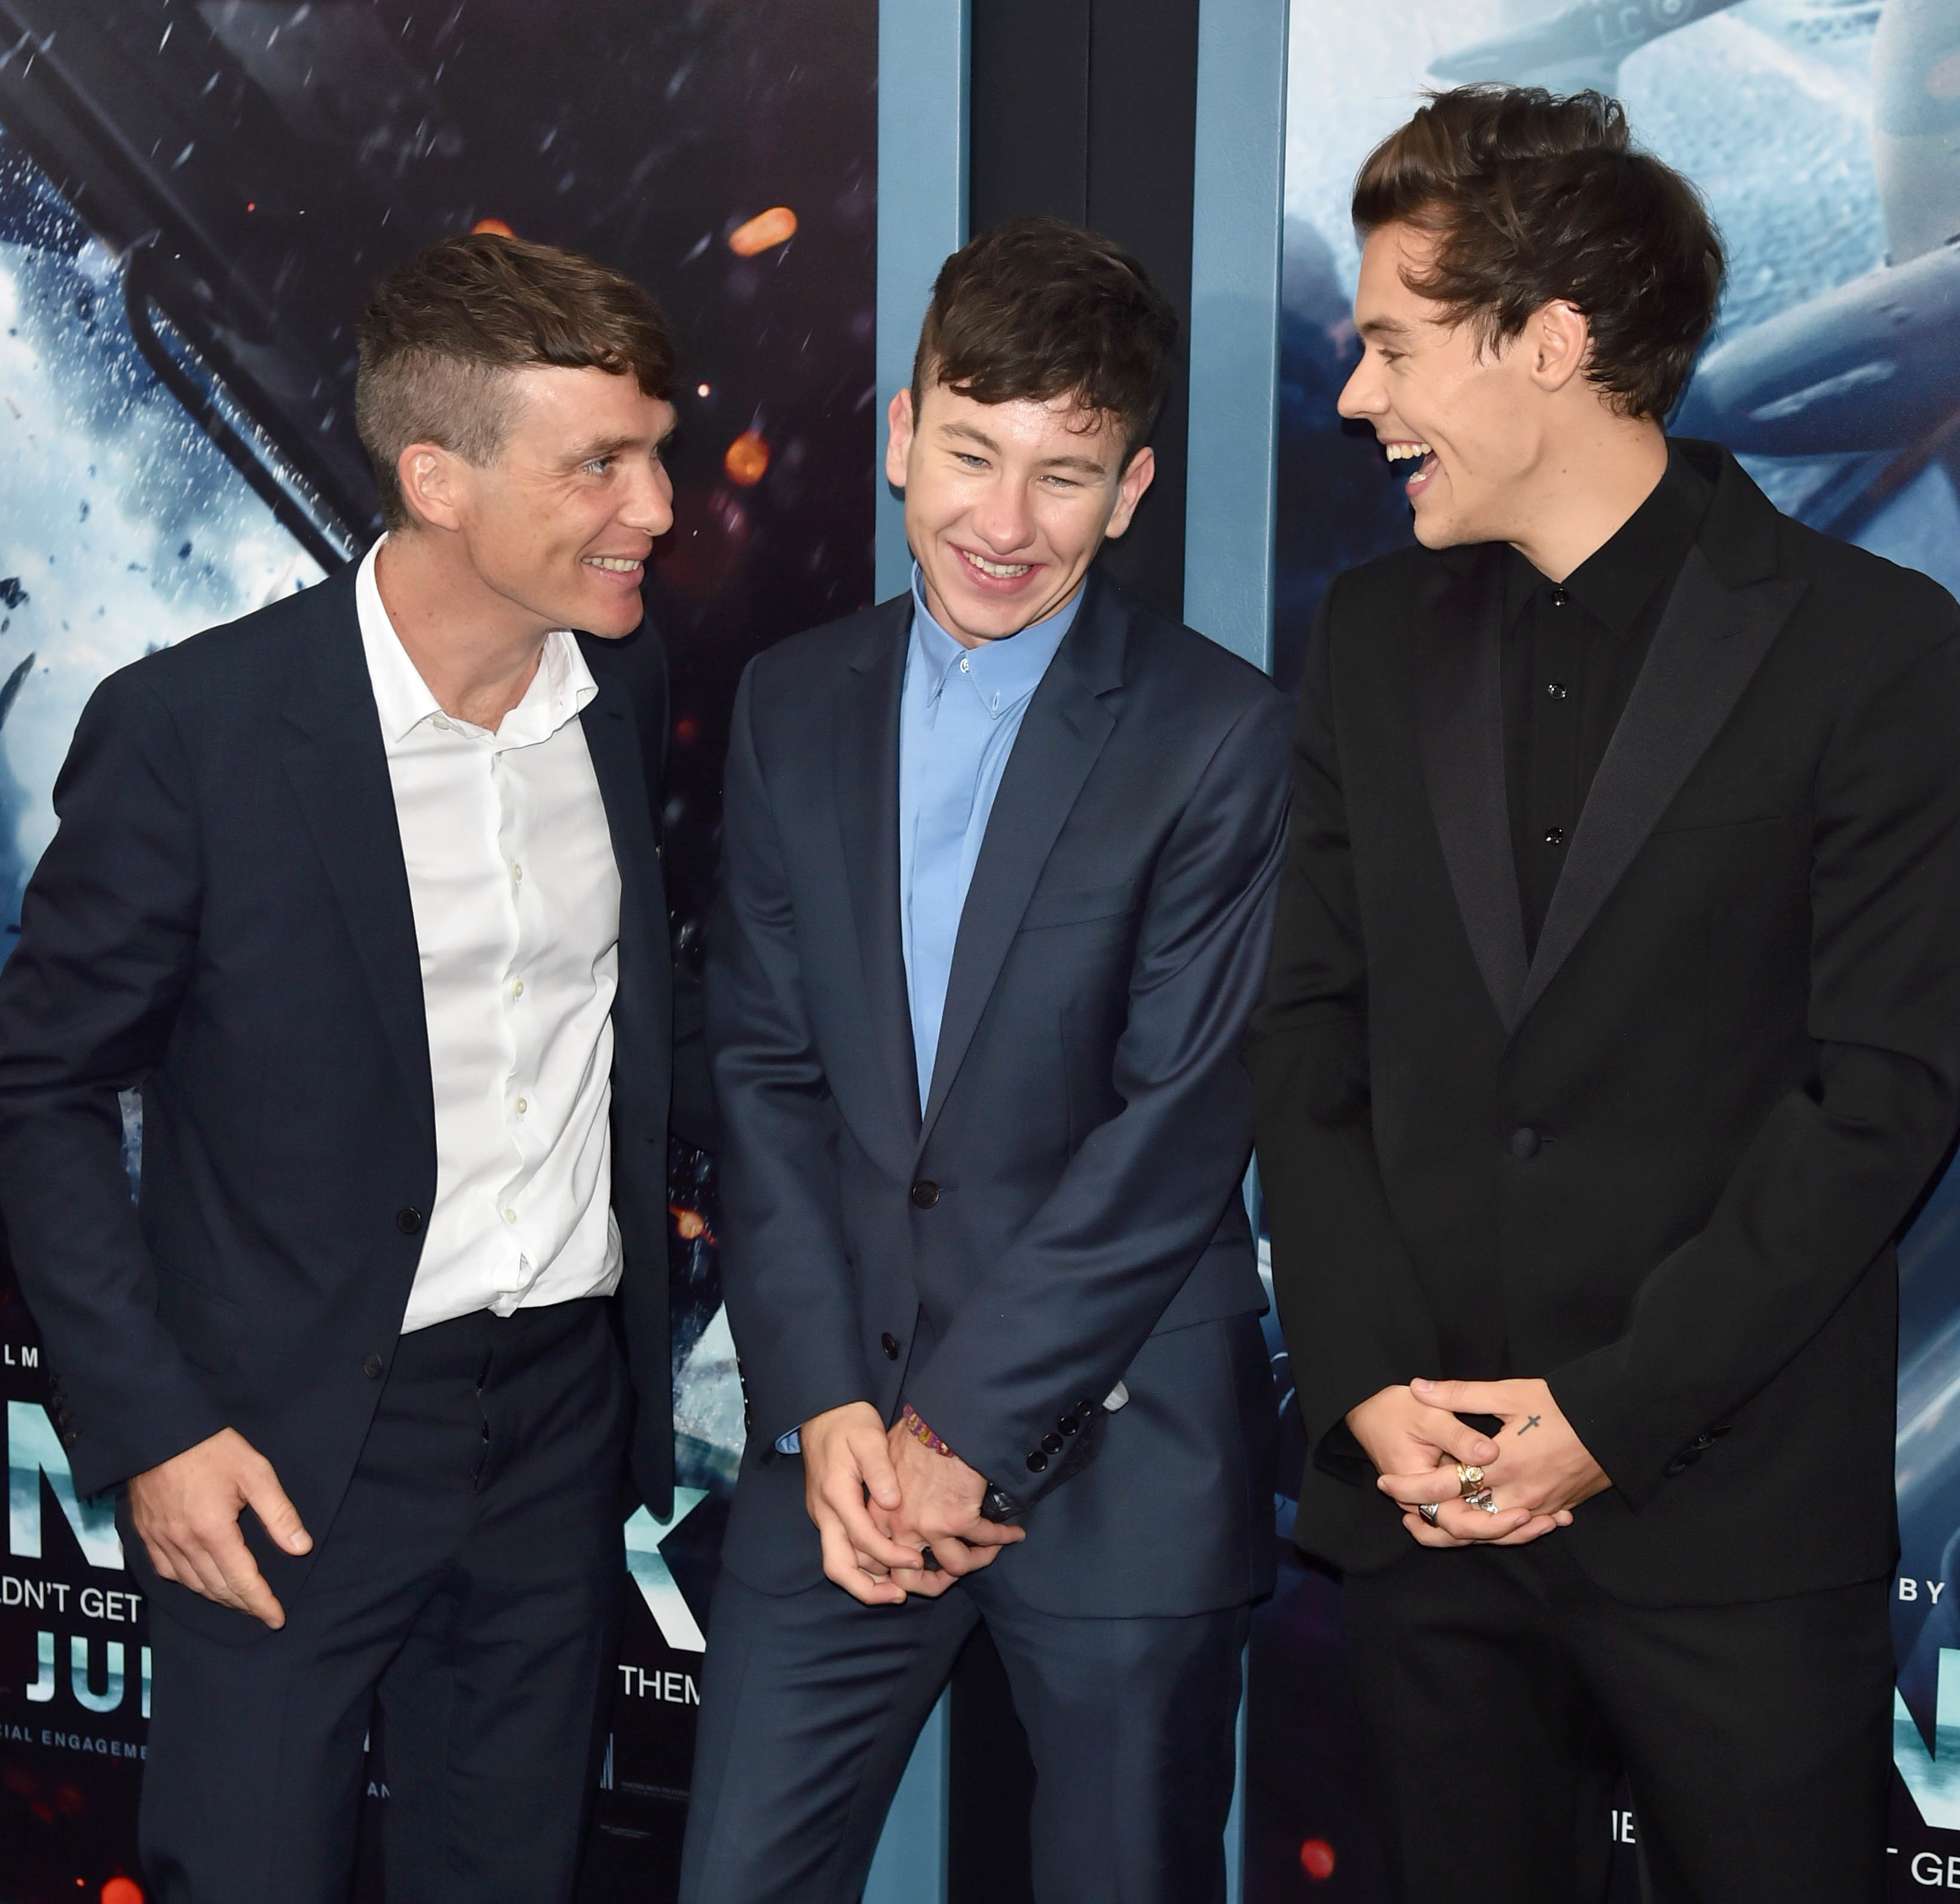 """Cillian Murphy, Barry Keoghan and Harry Styles attend the """"Dunkirk"""" film premiere in New York City on July 18, 2017."""